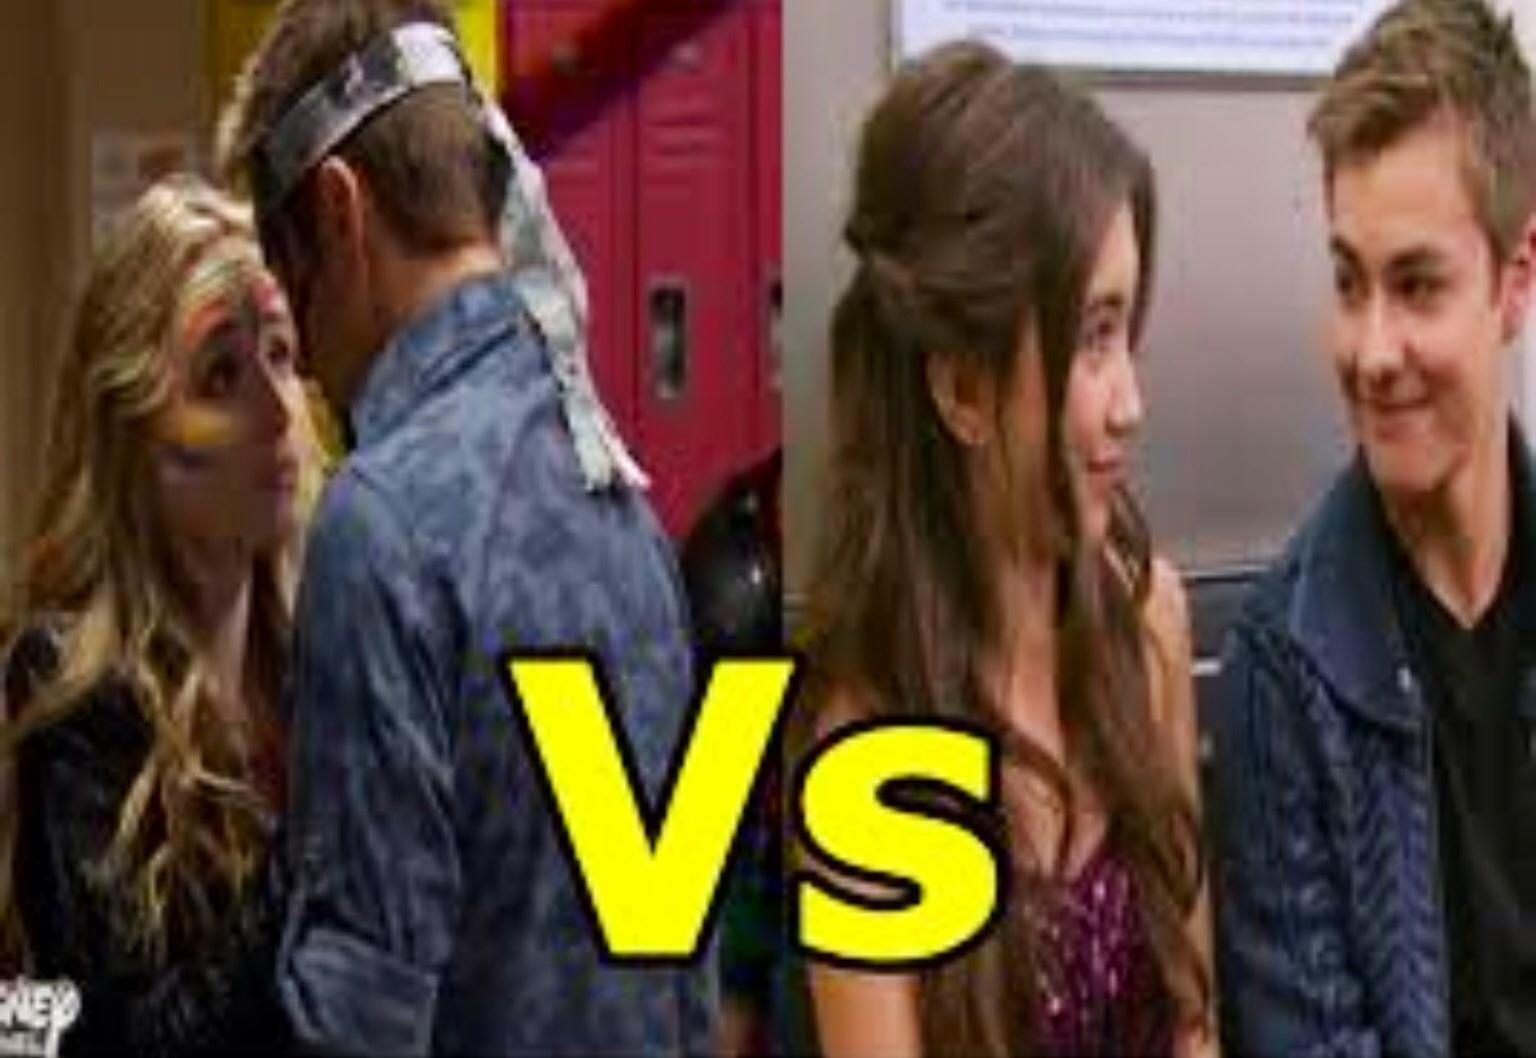 Who do you want to be together from Girl Meets World?